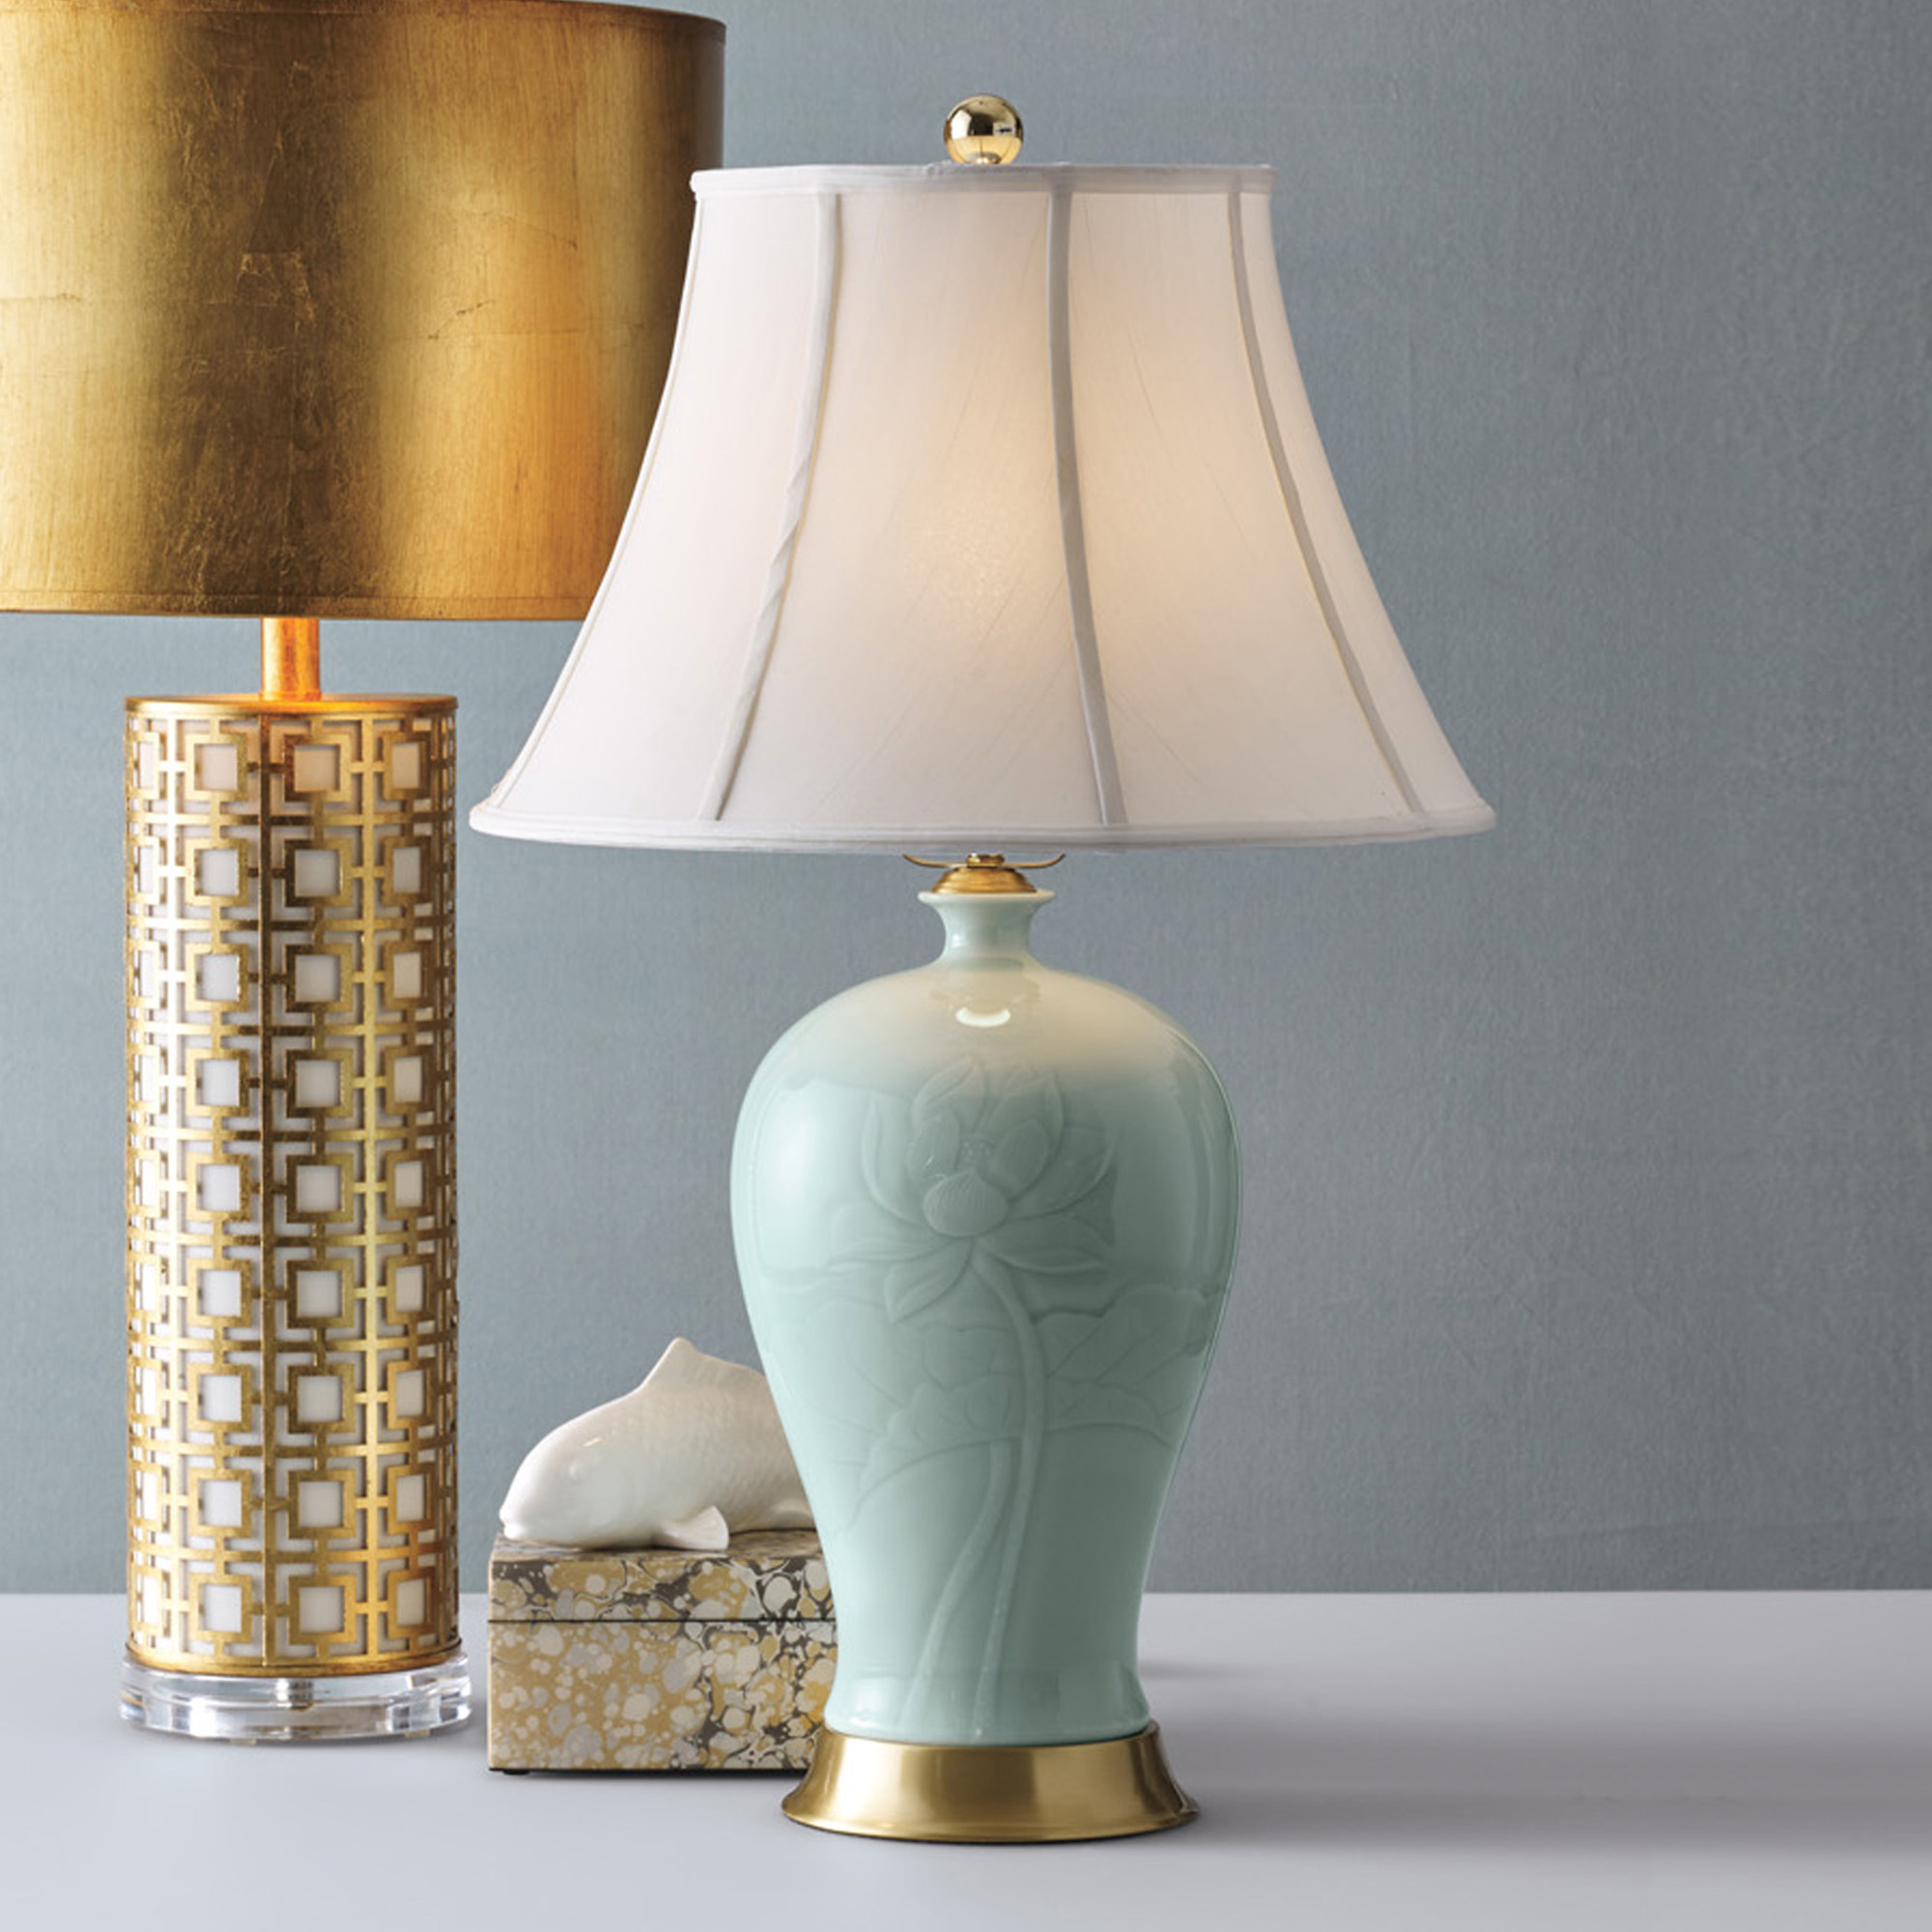 Celadon Lotus Lamp